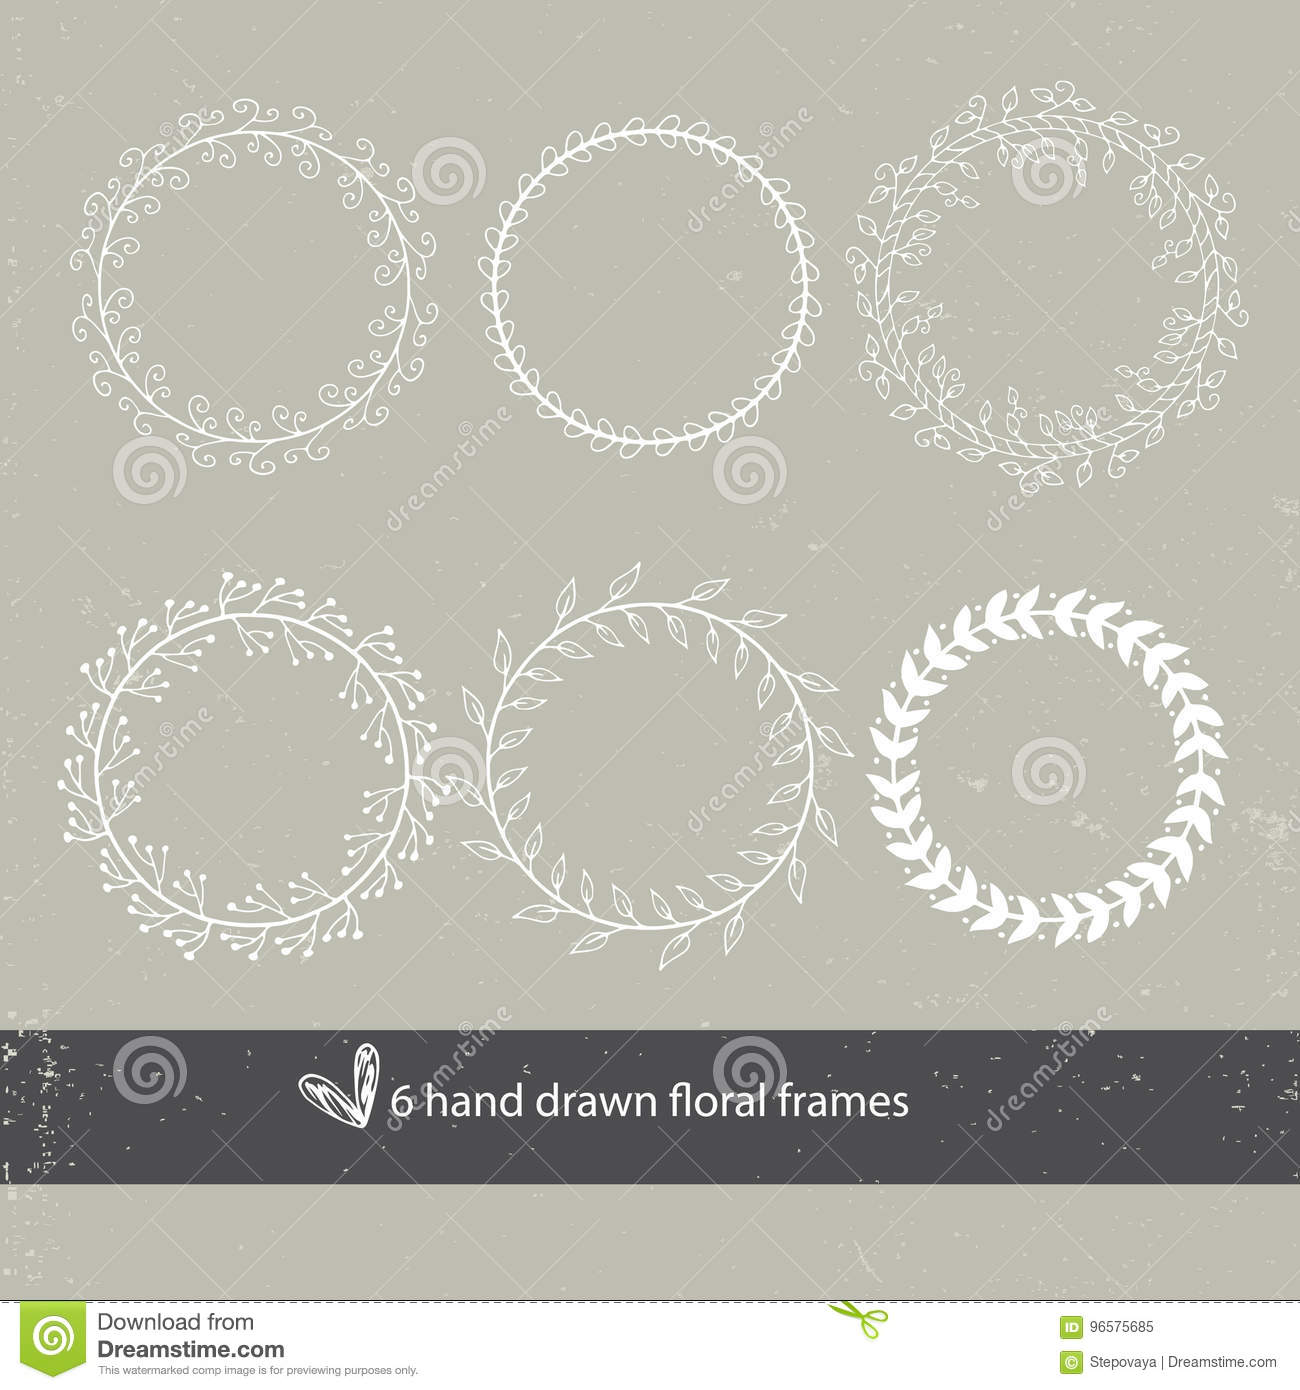 Unique Hand Drawn Round Frames - Wedding Decor Elements In Boho ...